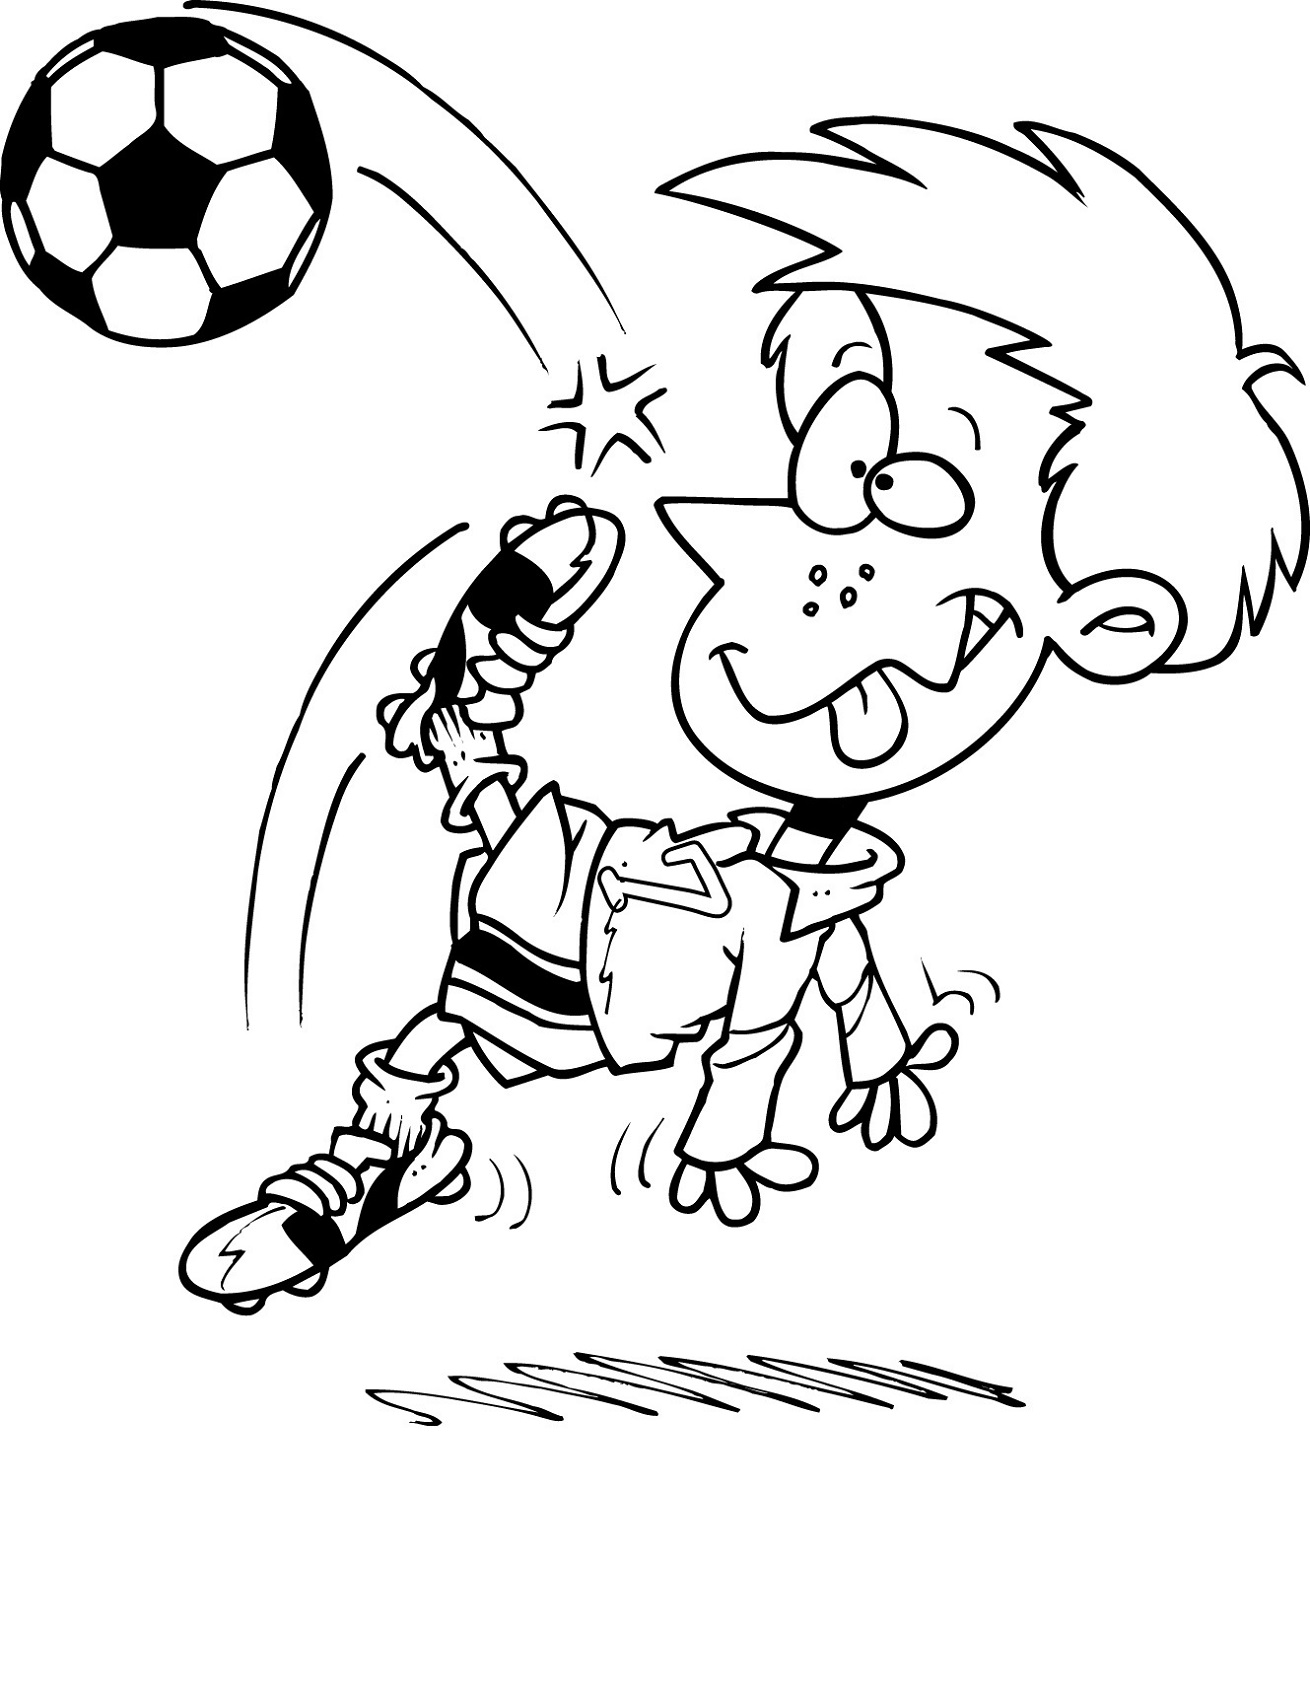 Coloring Pages for Boys Soccer – Learning Printable